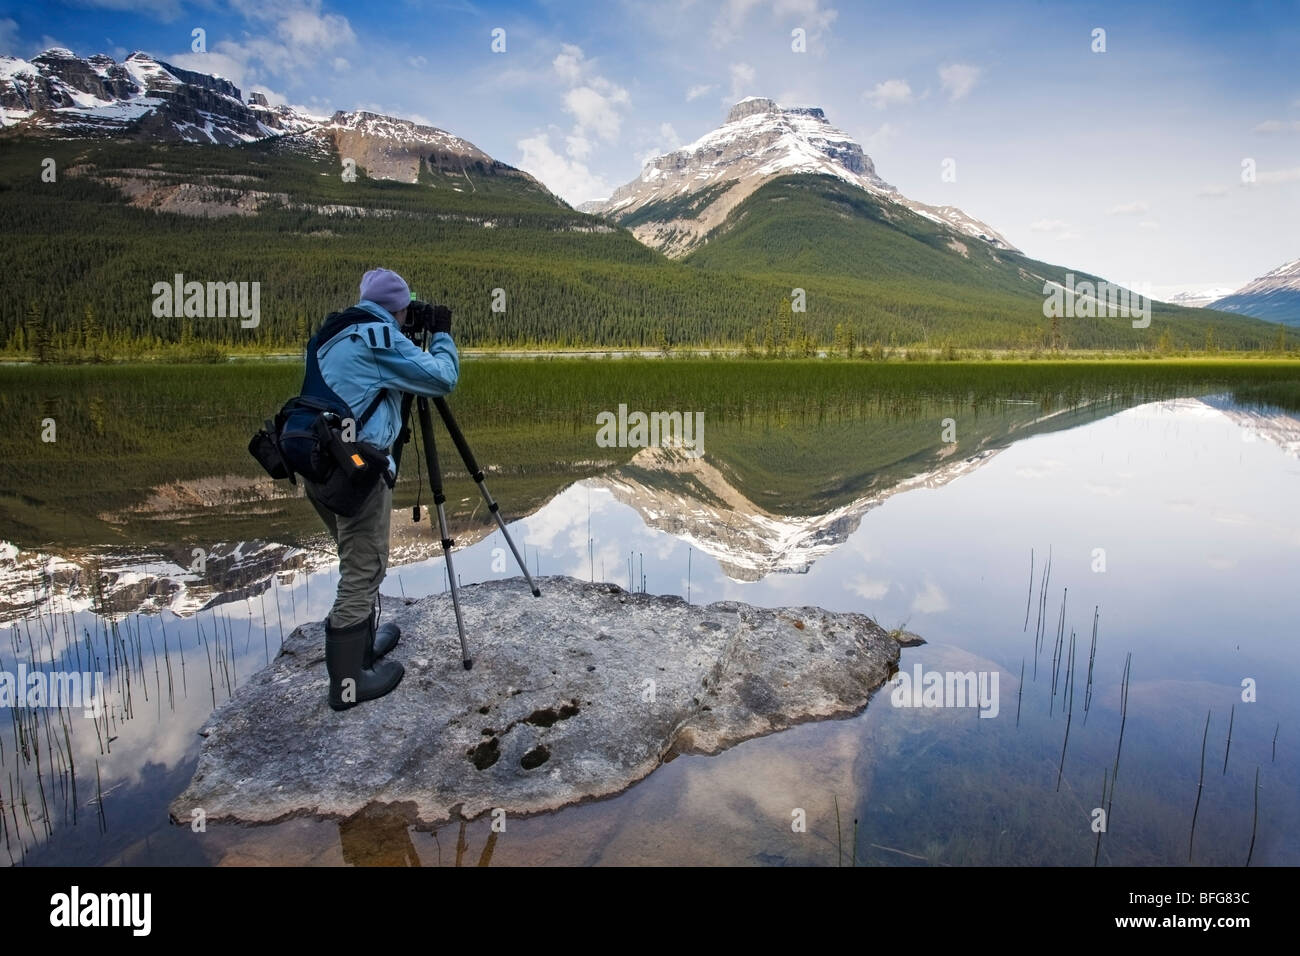 A Photographer sets up a morning landscape photo at Rampart Ponds in Banff National Park, Alberta, Canada - Stock Image